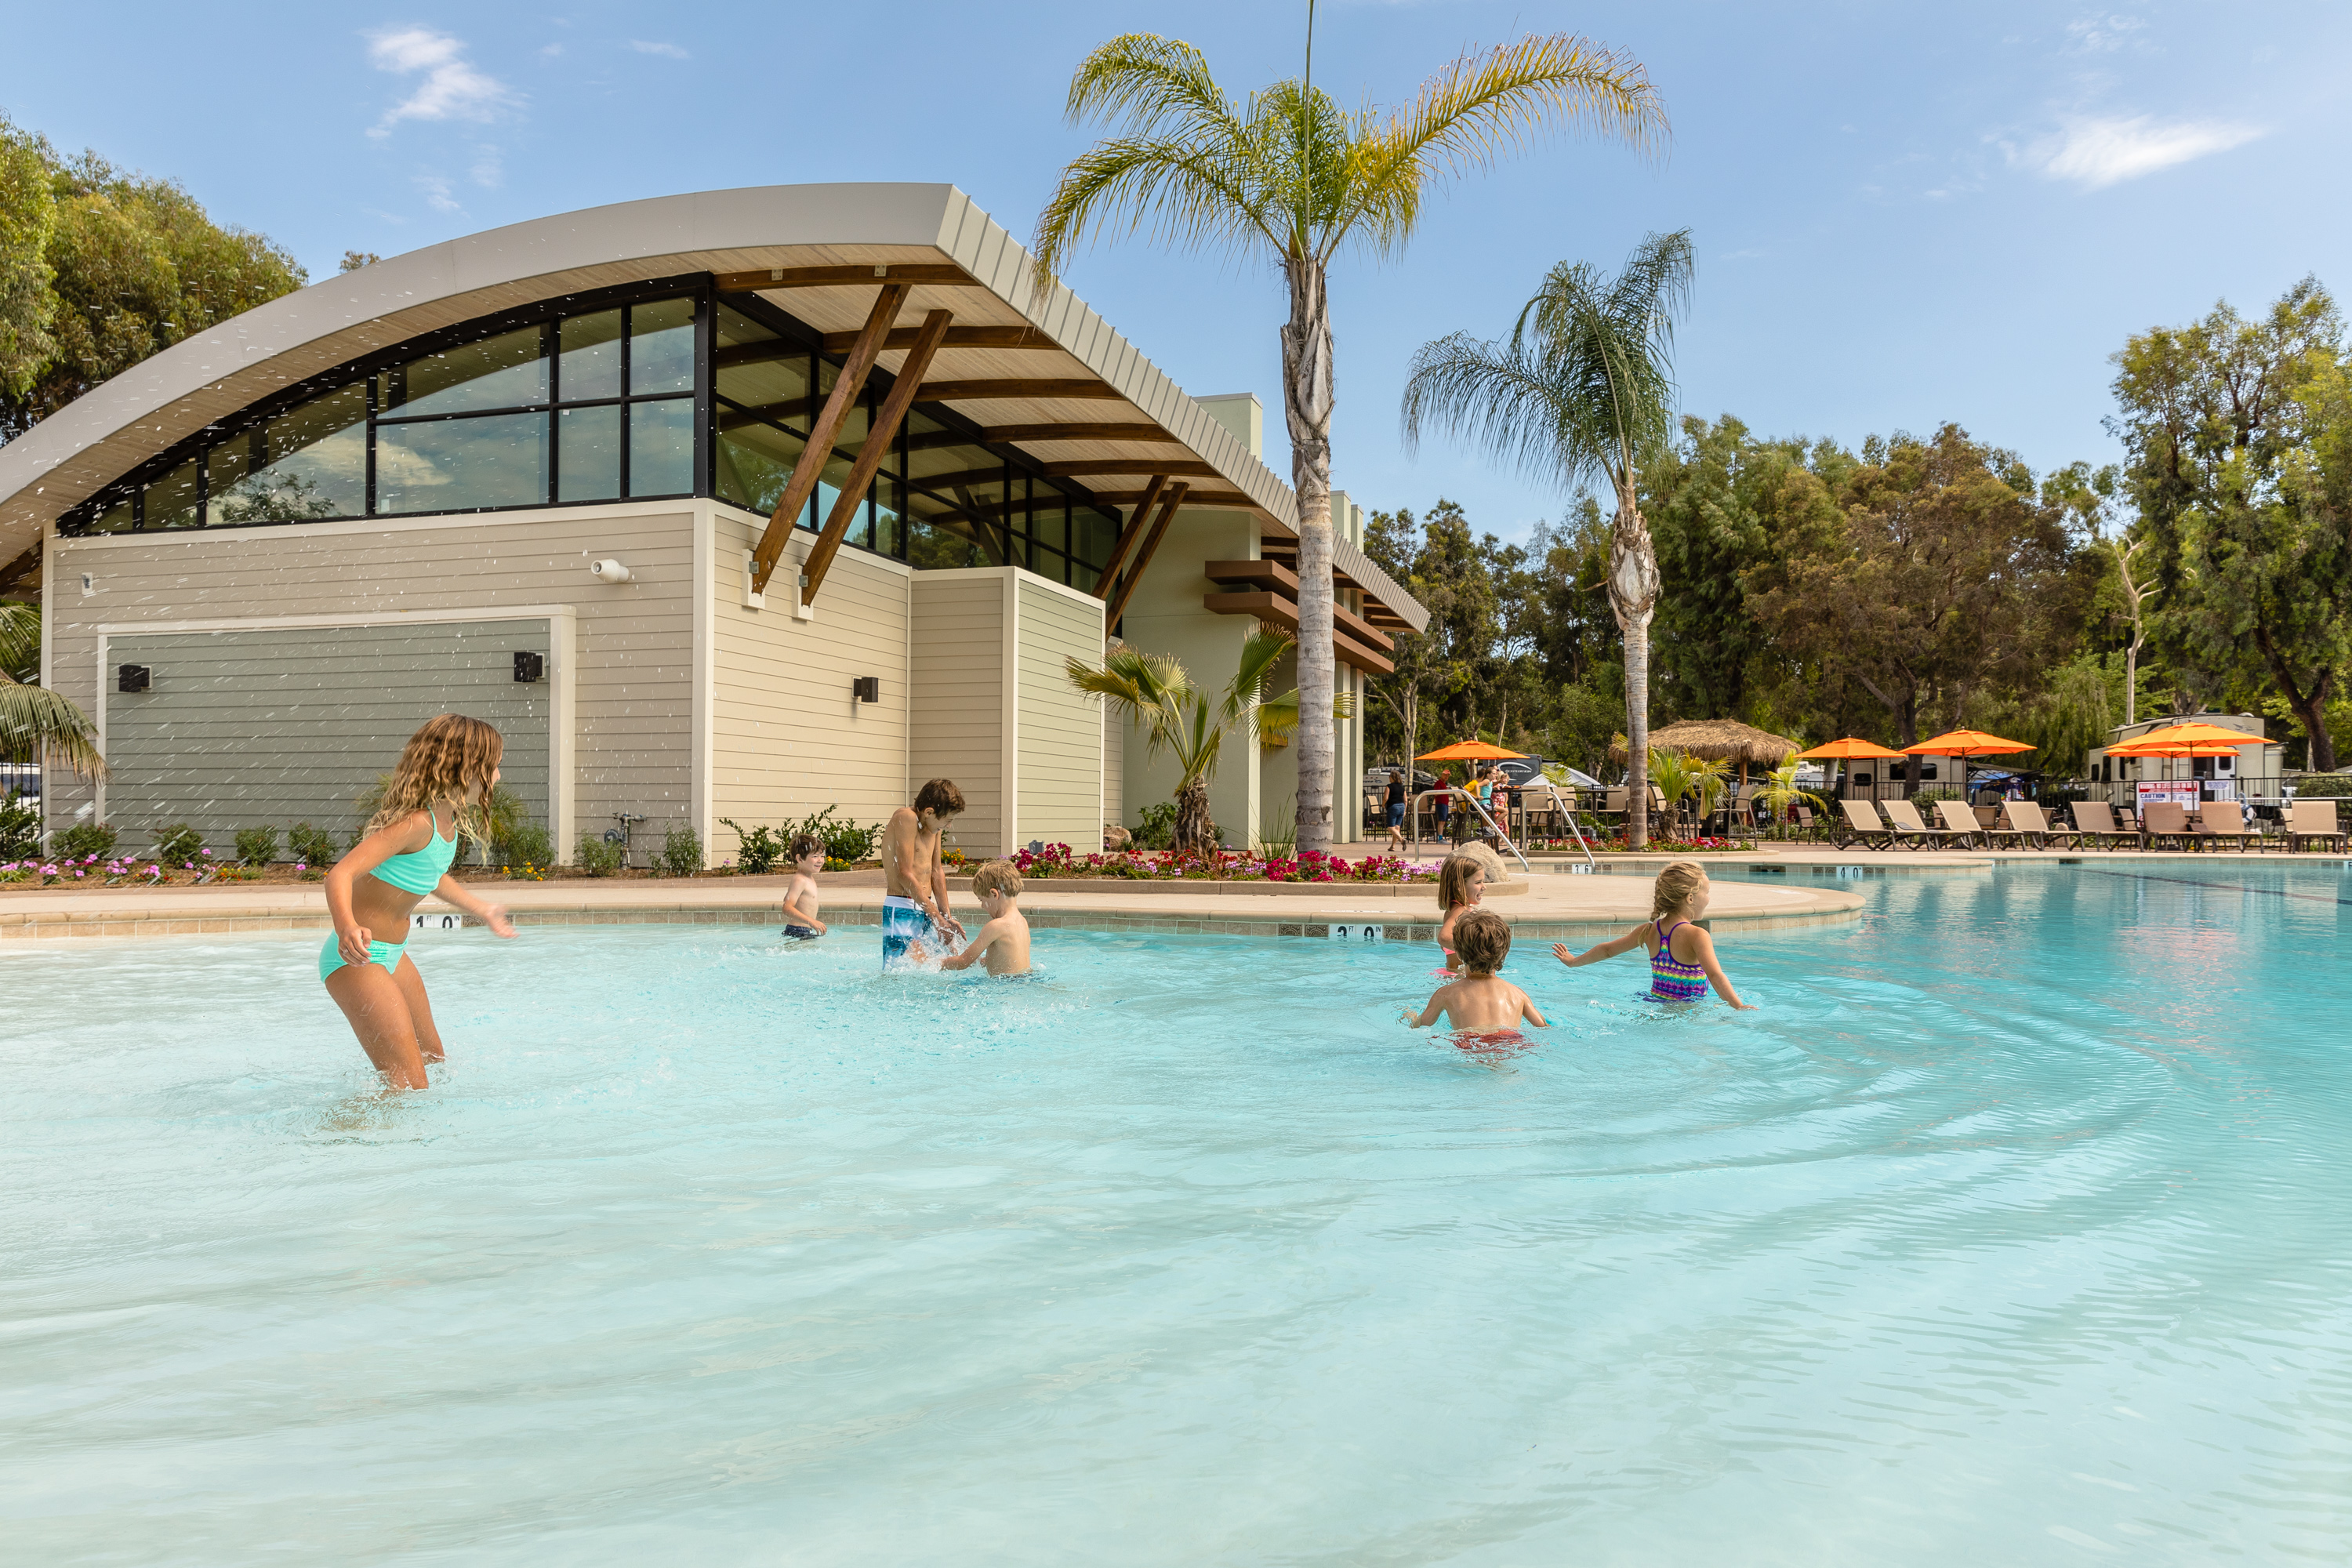 Chula Vista California Area Attractions and Activities | San Diego